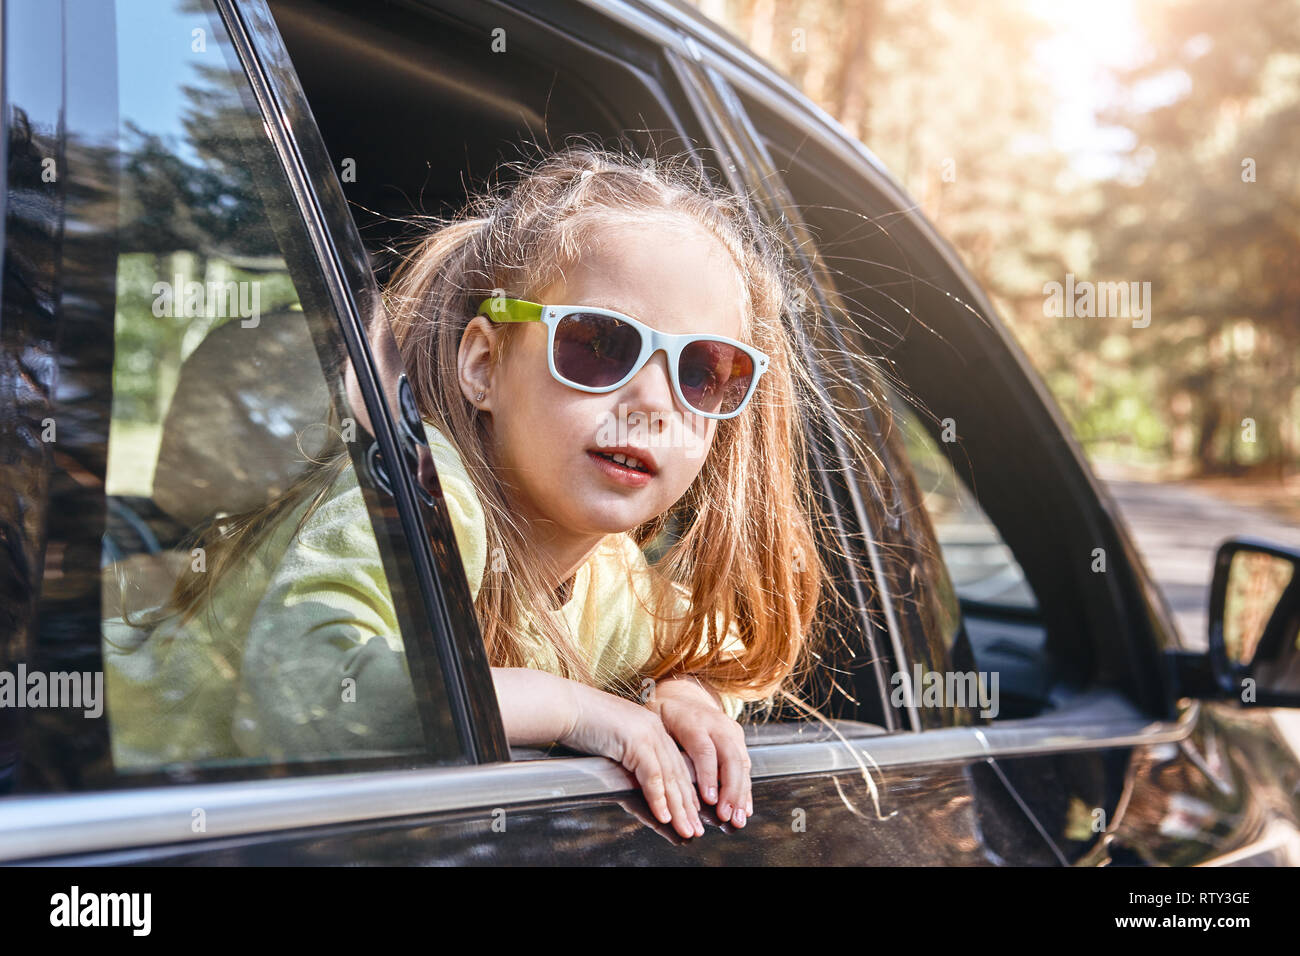 7e45df3bb76e Five years old blond caucasian child girl, wearing sunglasses and looking  out the window while traveling with her parents in a car. Safe trip, journey